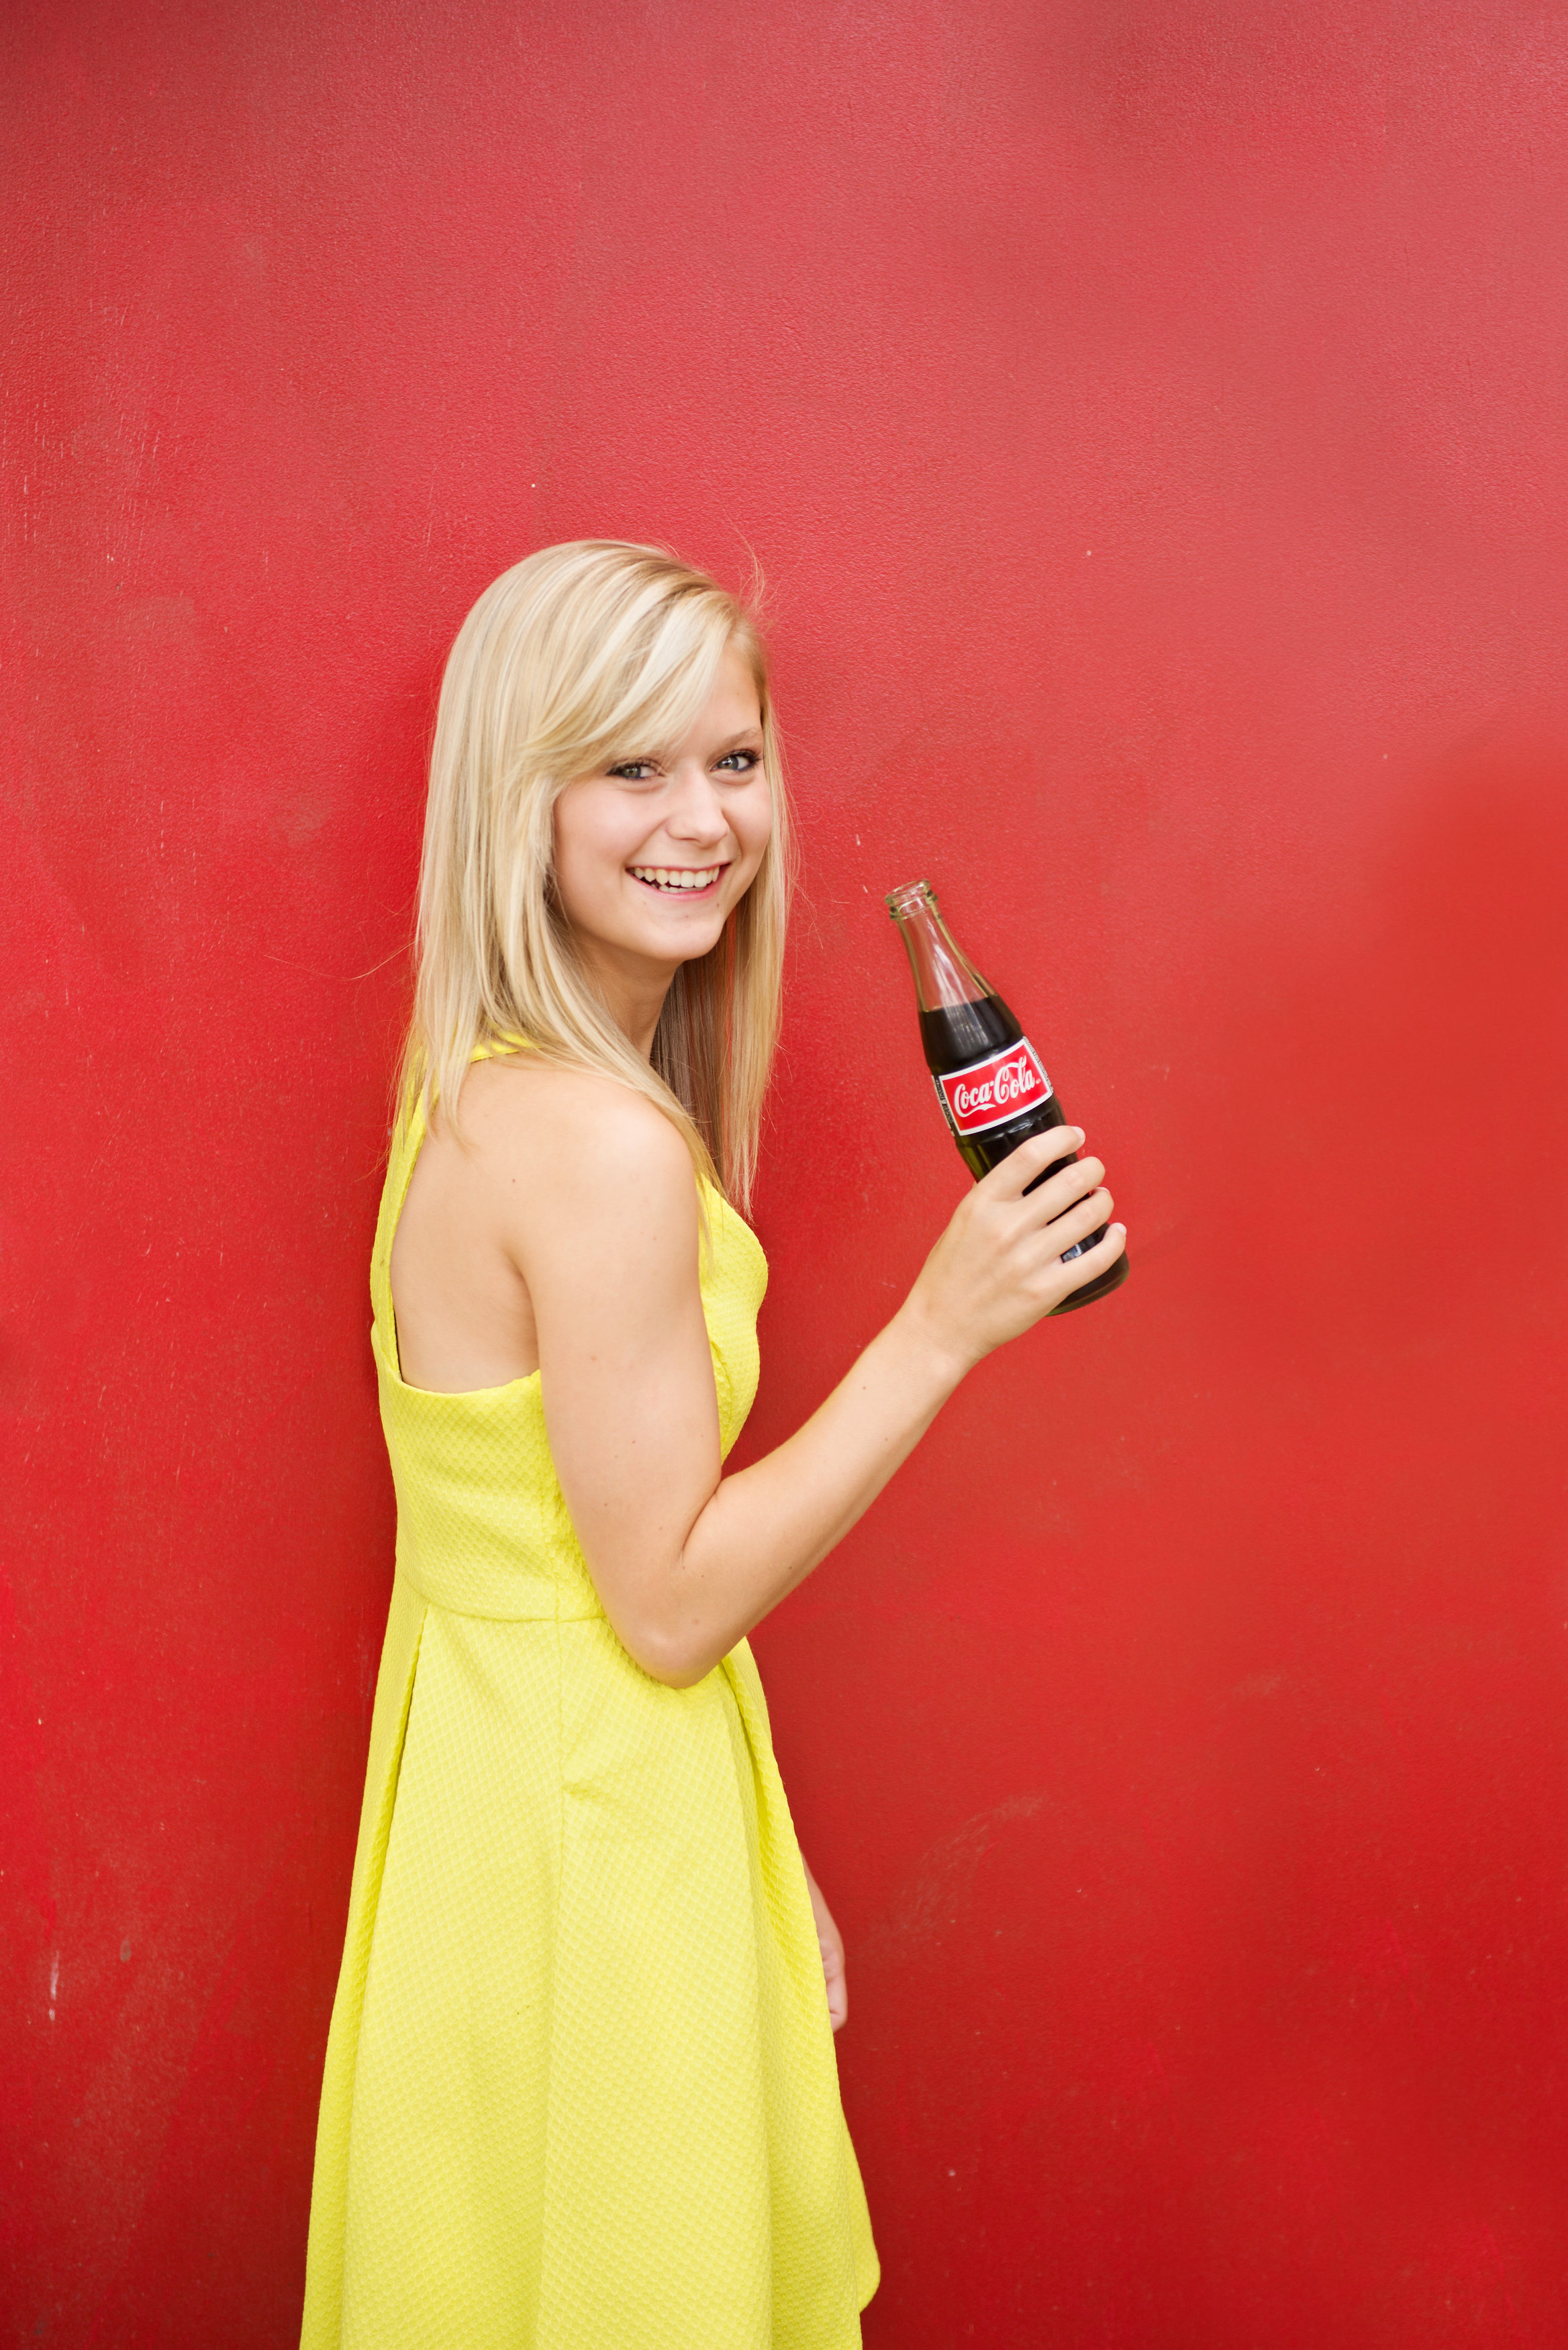 orlando-senior-girls-red-door-coke.jpg